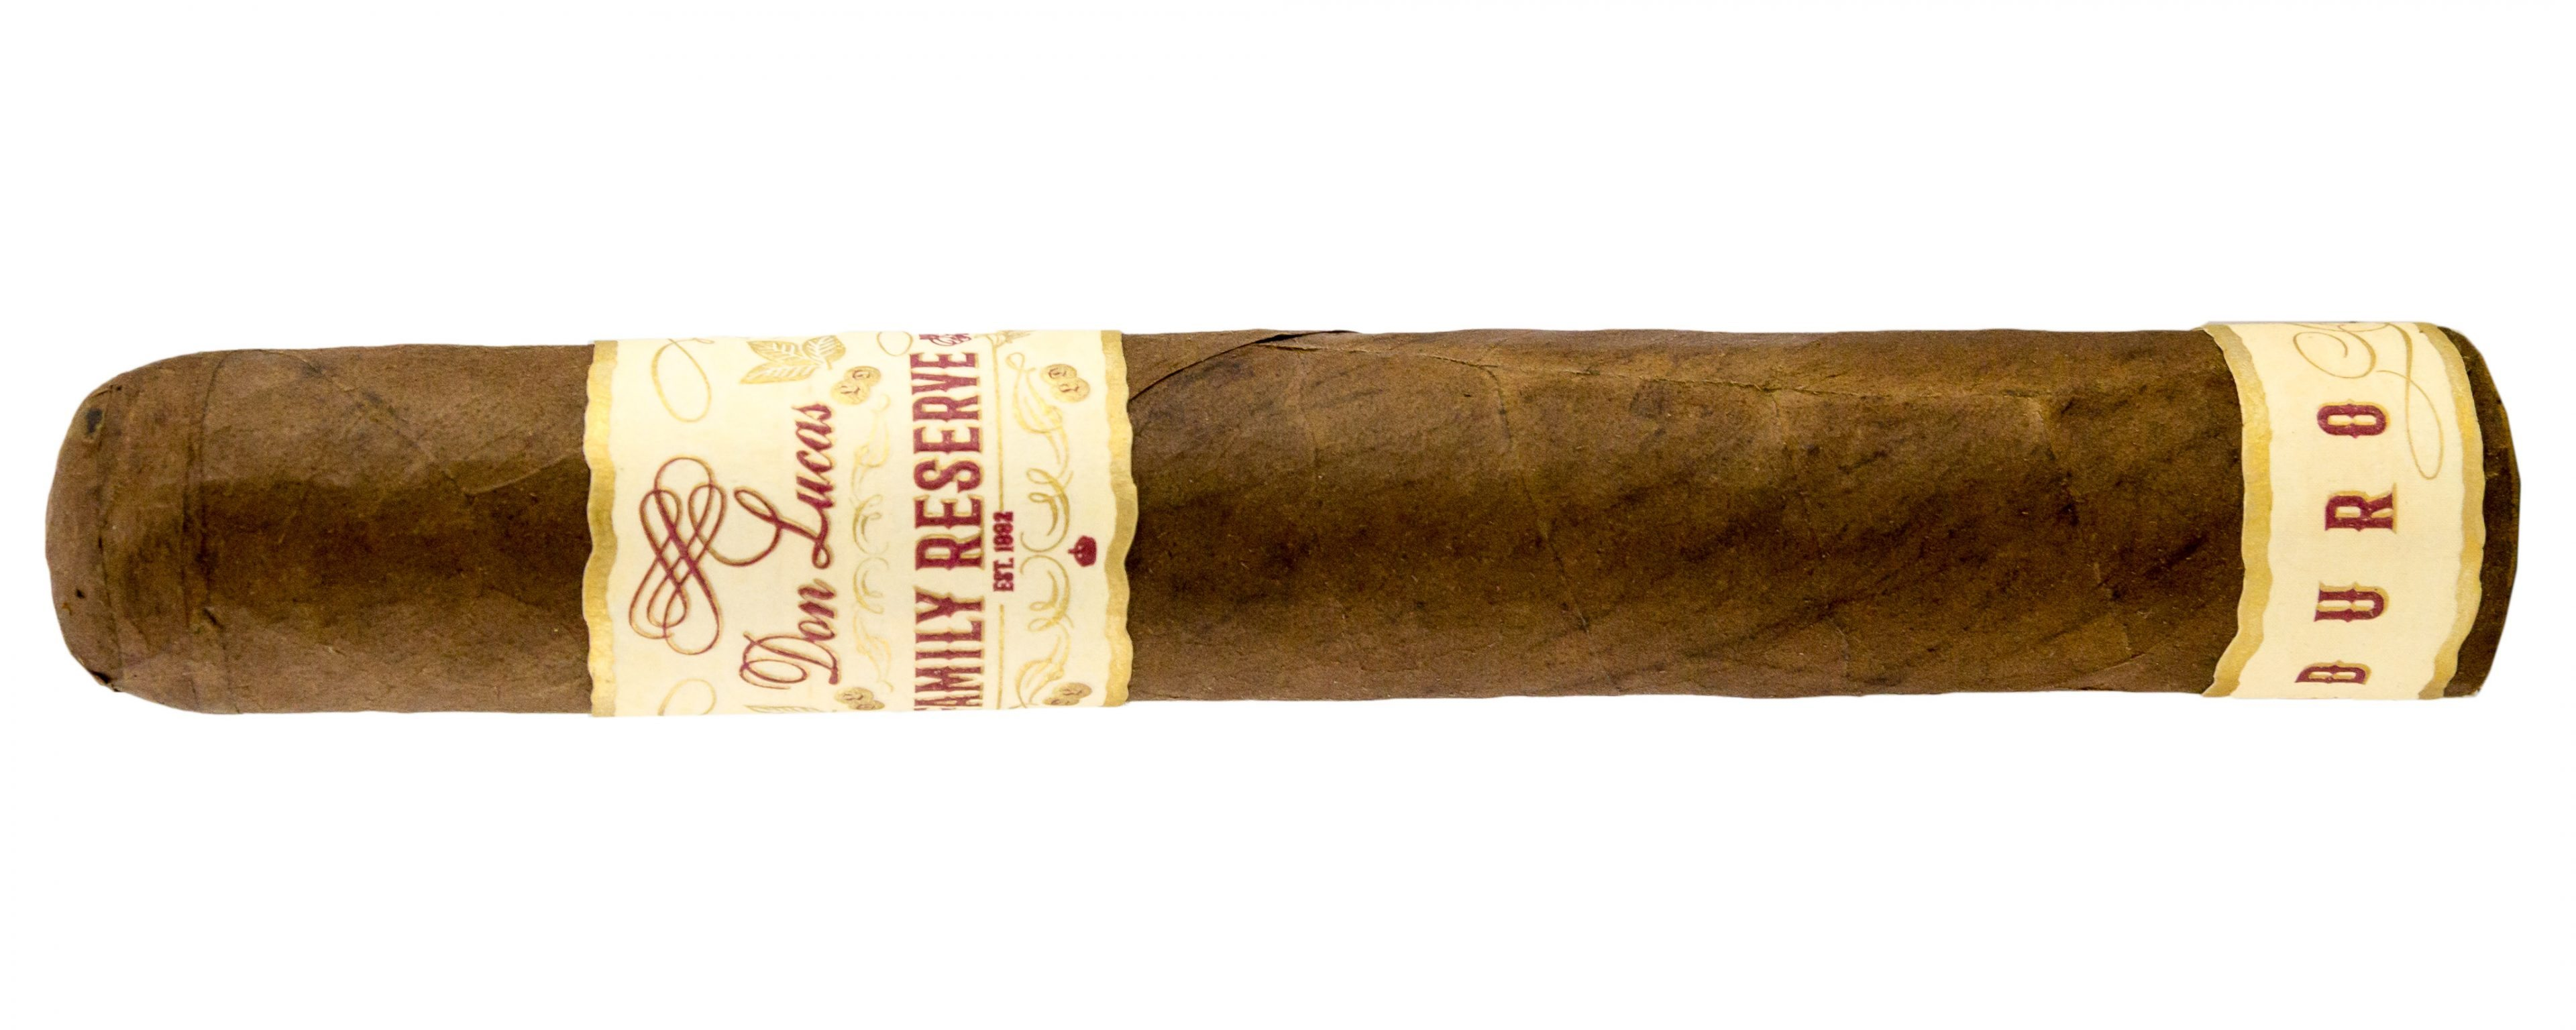 Blind Cigar Review: Don Lucas | Family Reserve Maduro